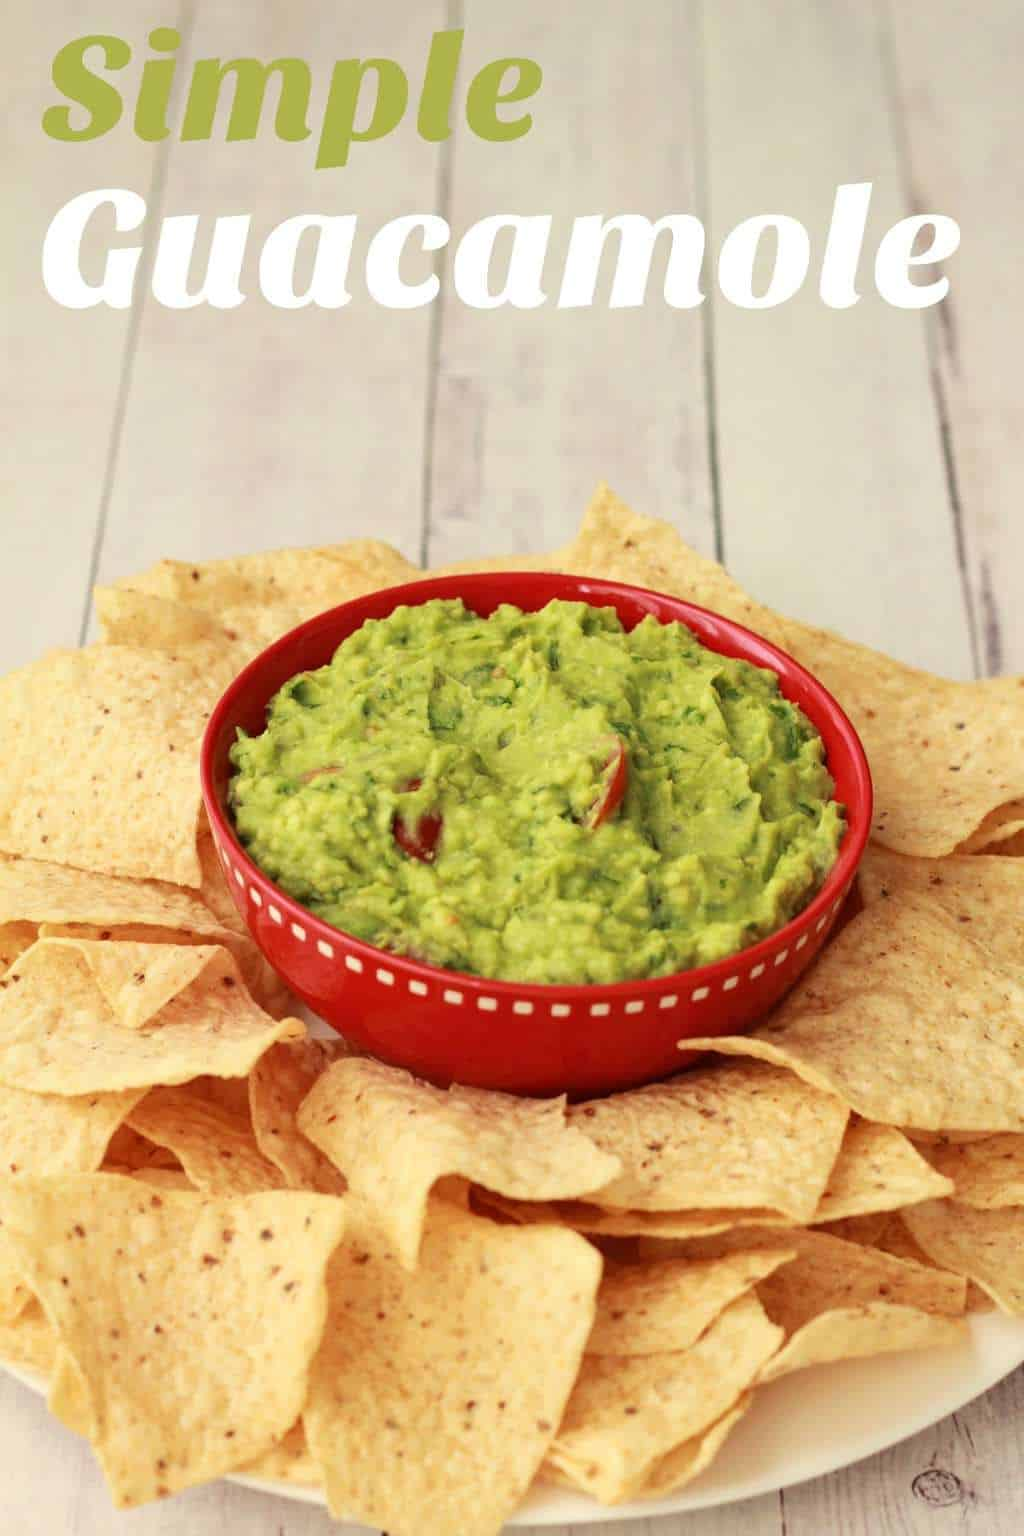 Simple Guacamole Recipe - Ideal as a dip for raw veggies, tortilla chips or flat breads. #vegan #lovingitvegan #guacamole #dips #appetizer